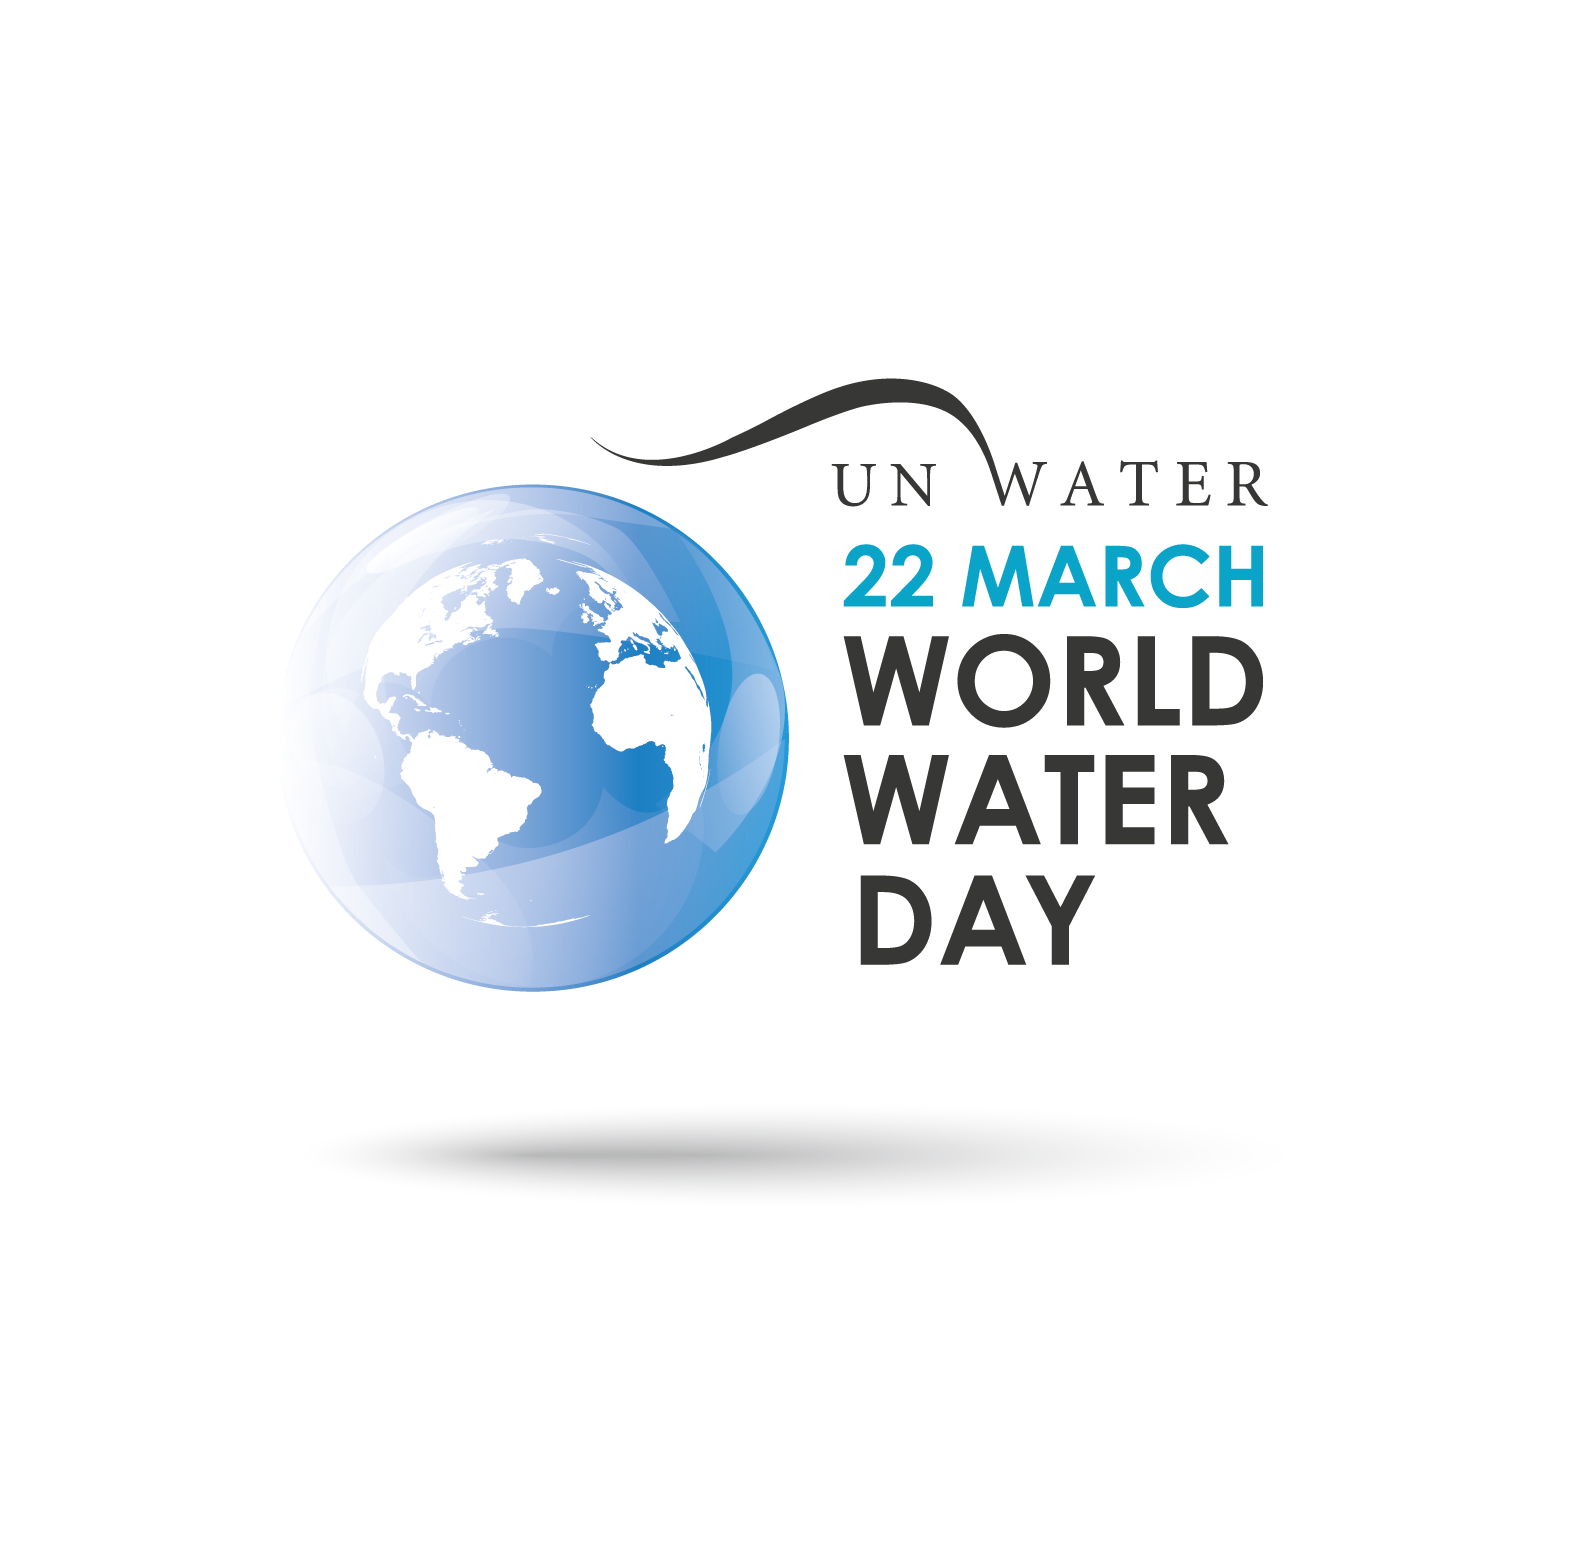 UN World Water Day